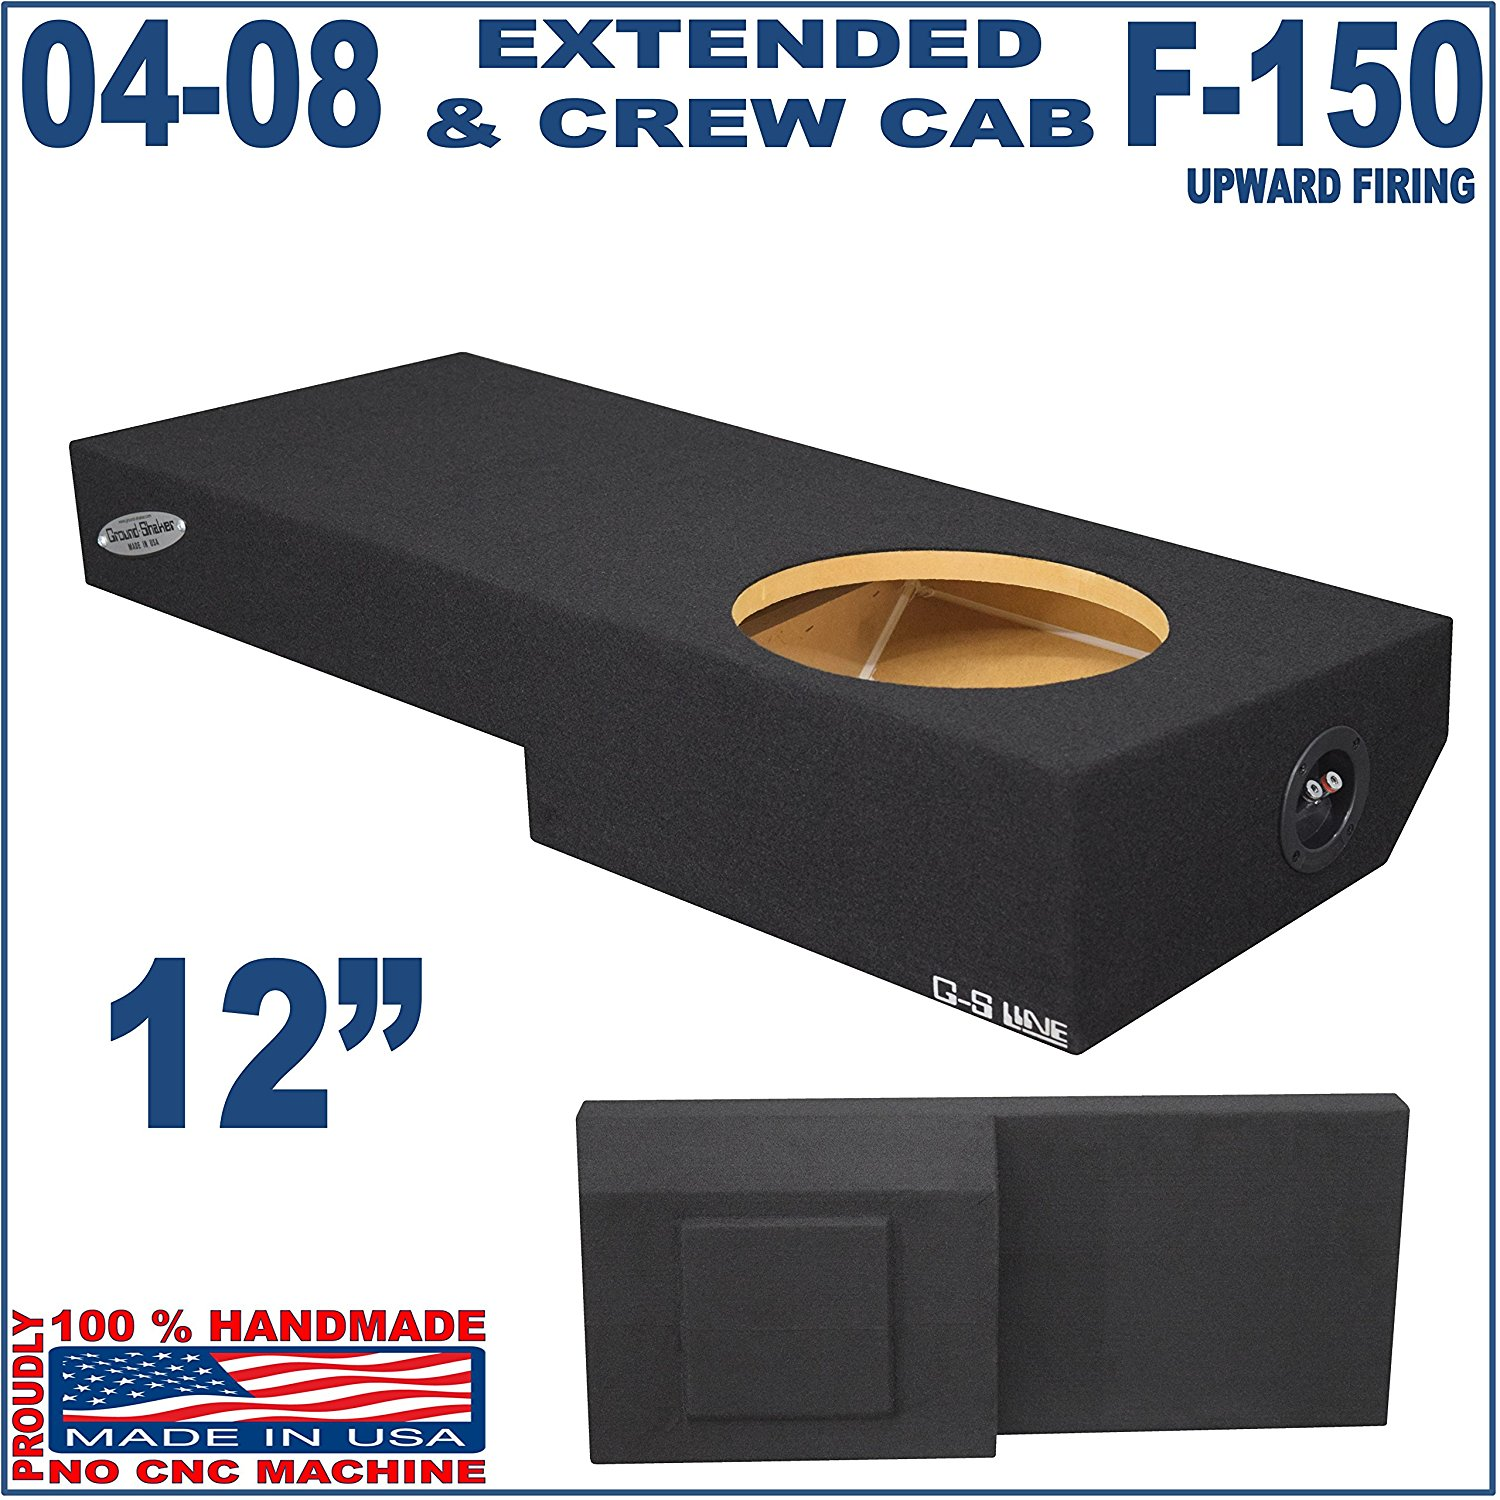 "04-08 Ford F-150 Ext-cab & Crew-cab Truck 12"" Sub woofer Box"